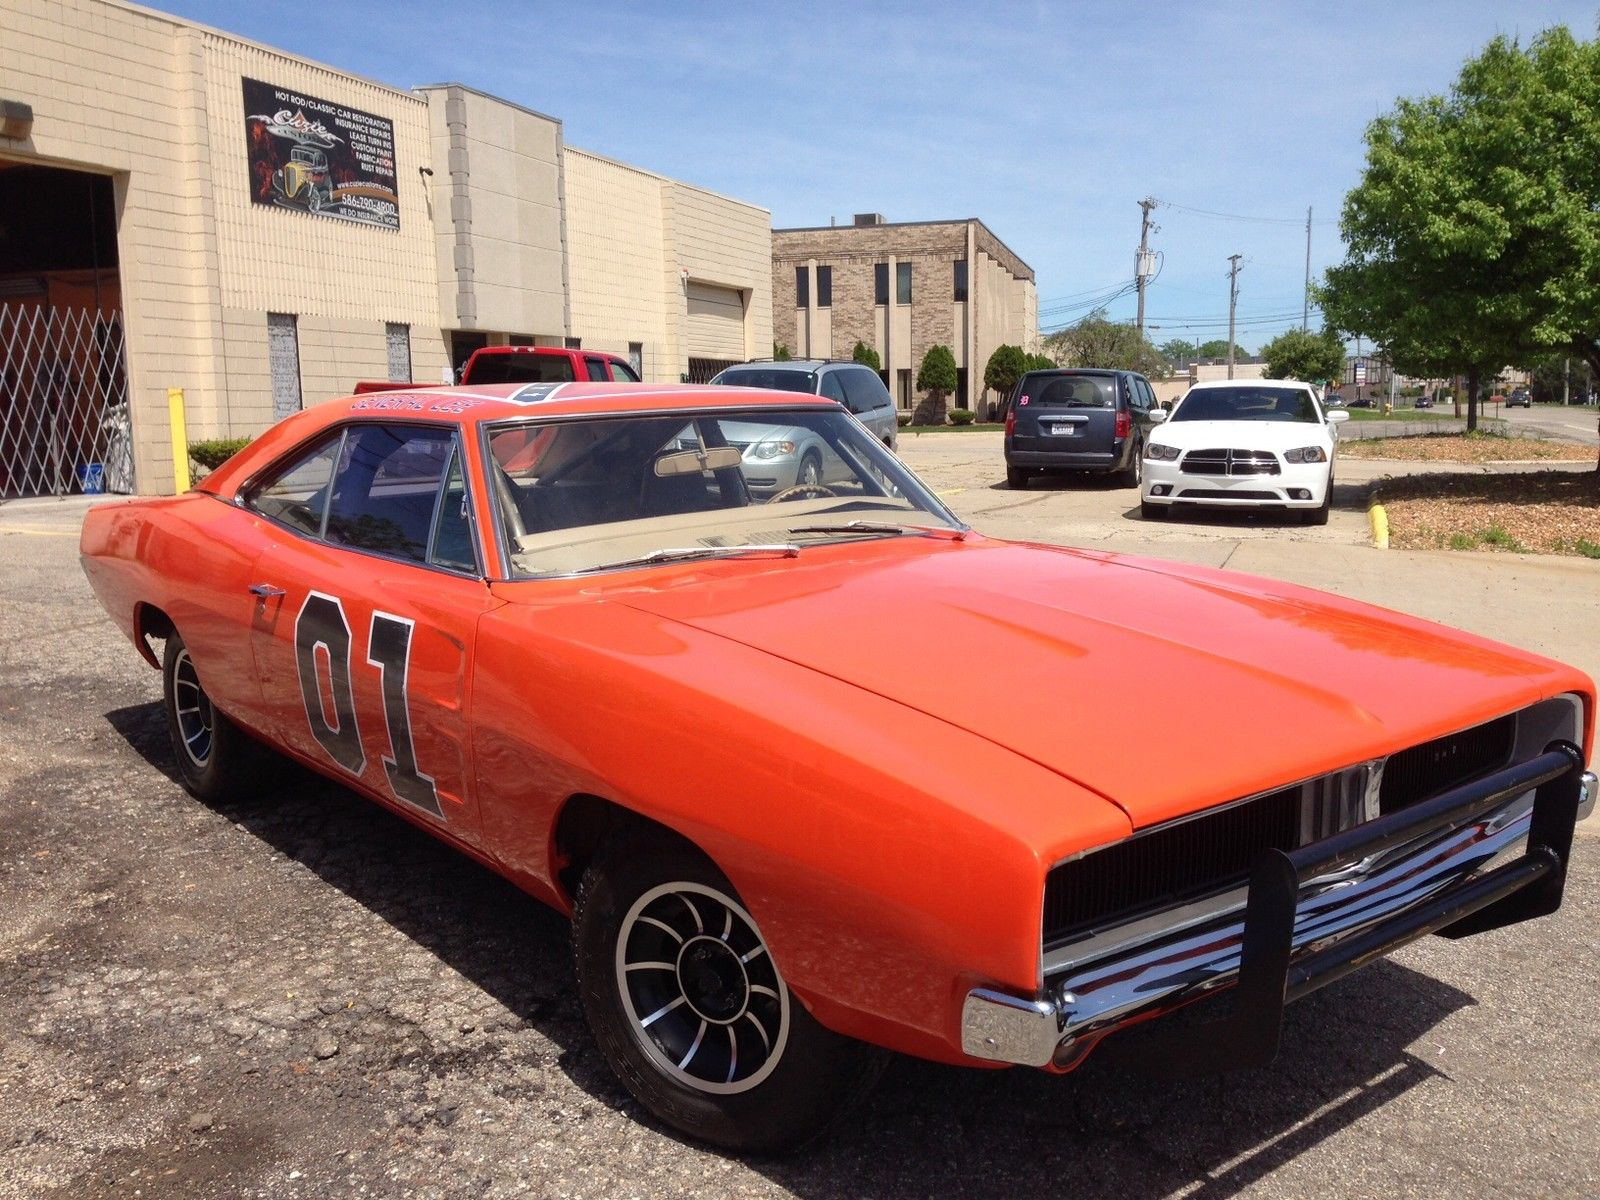 Ram Rt For Sale >> AutoTrader General Lee Charger on eBay | Mopar Blog